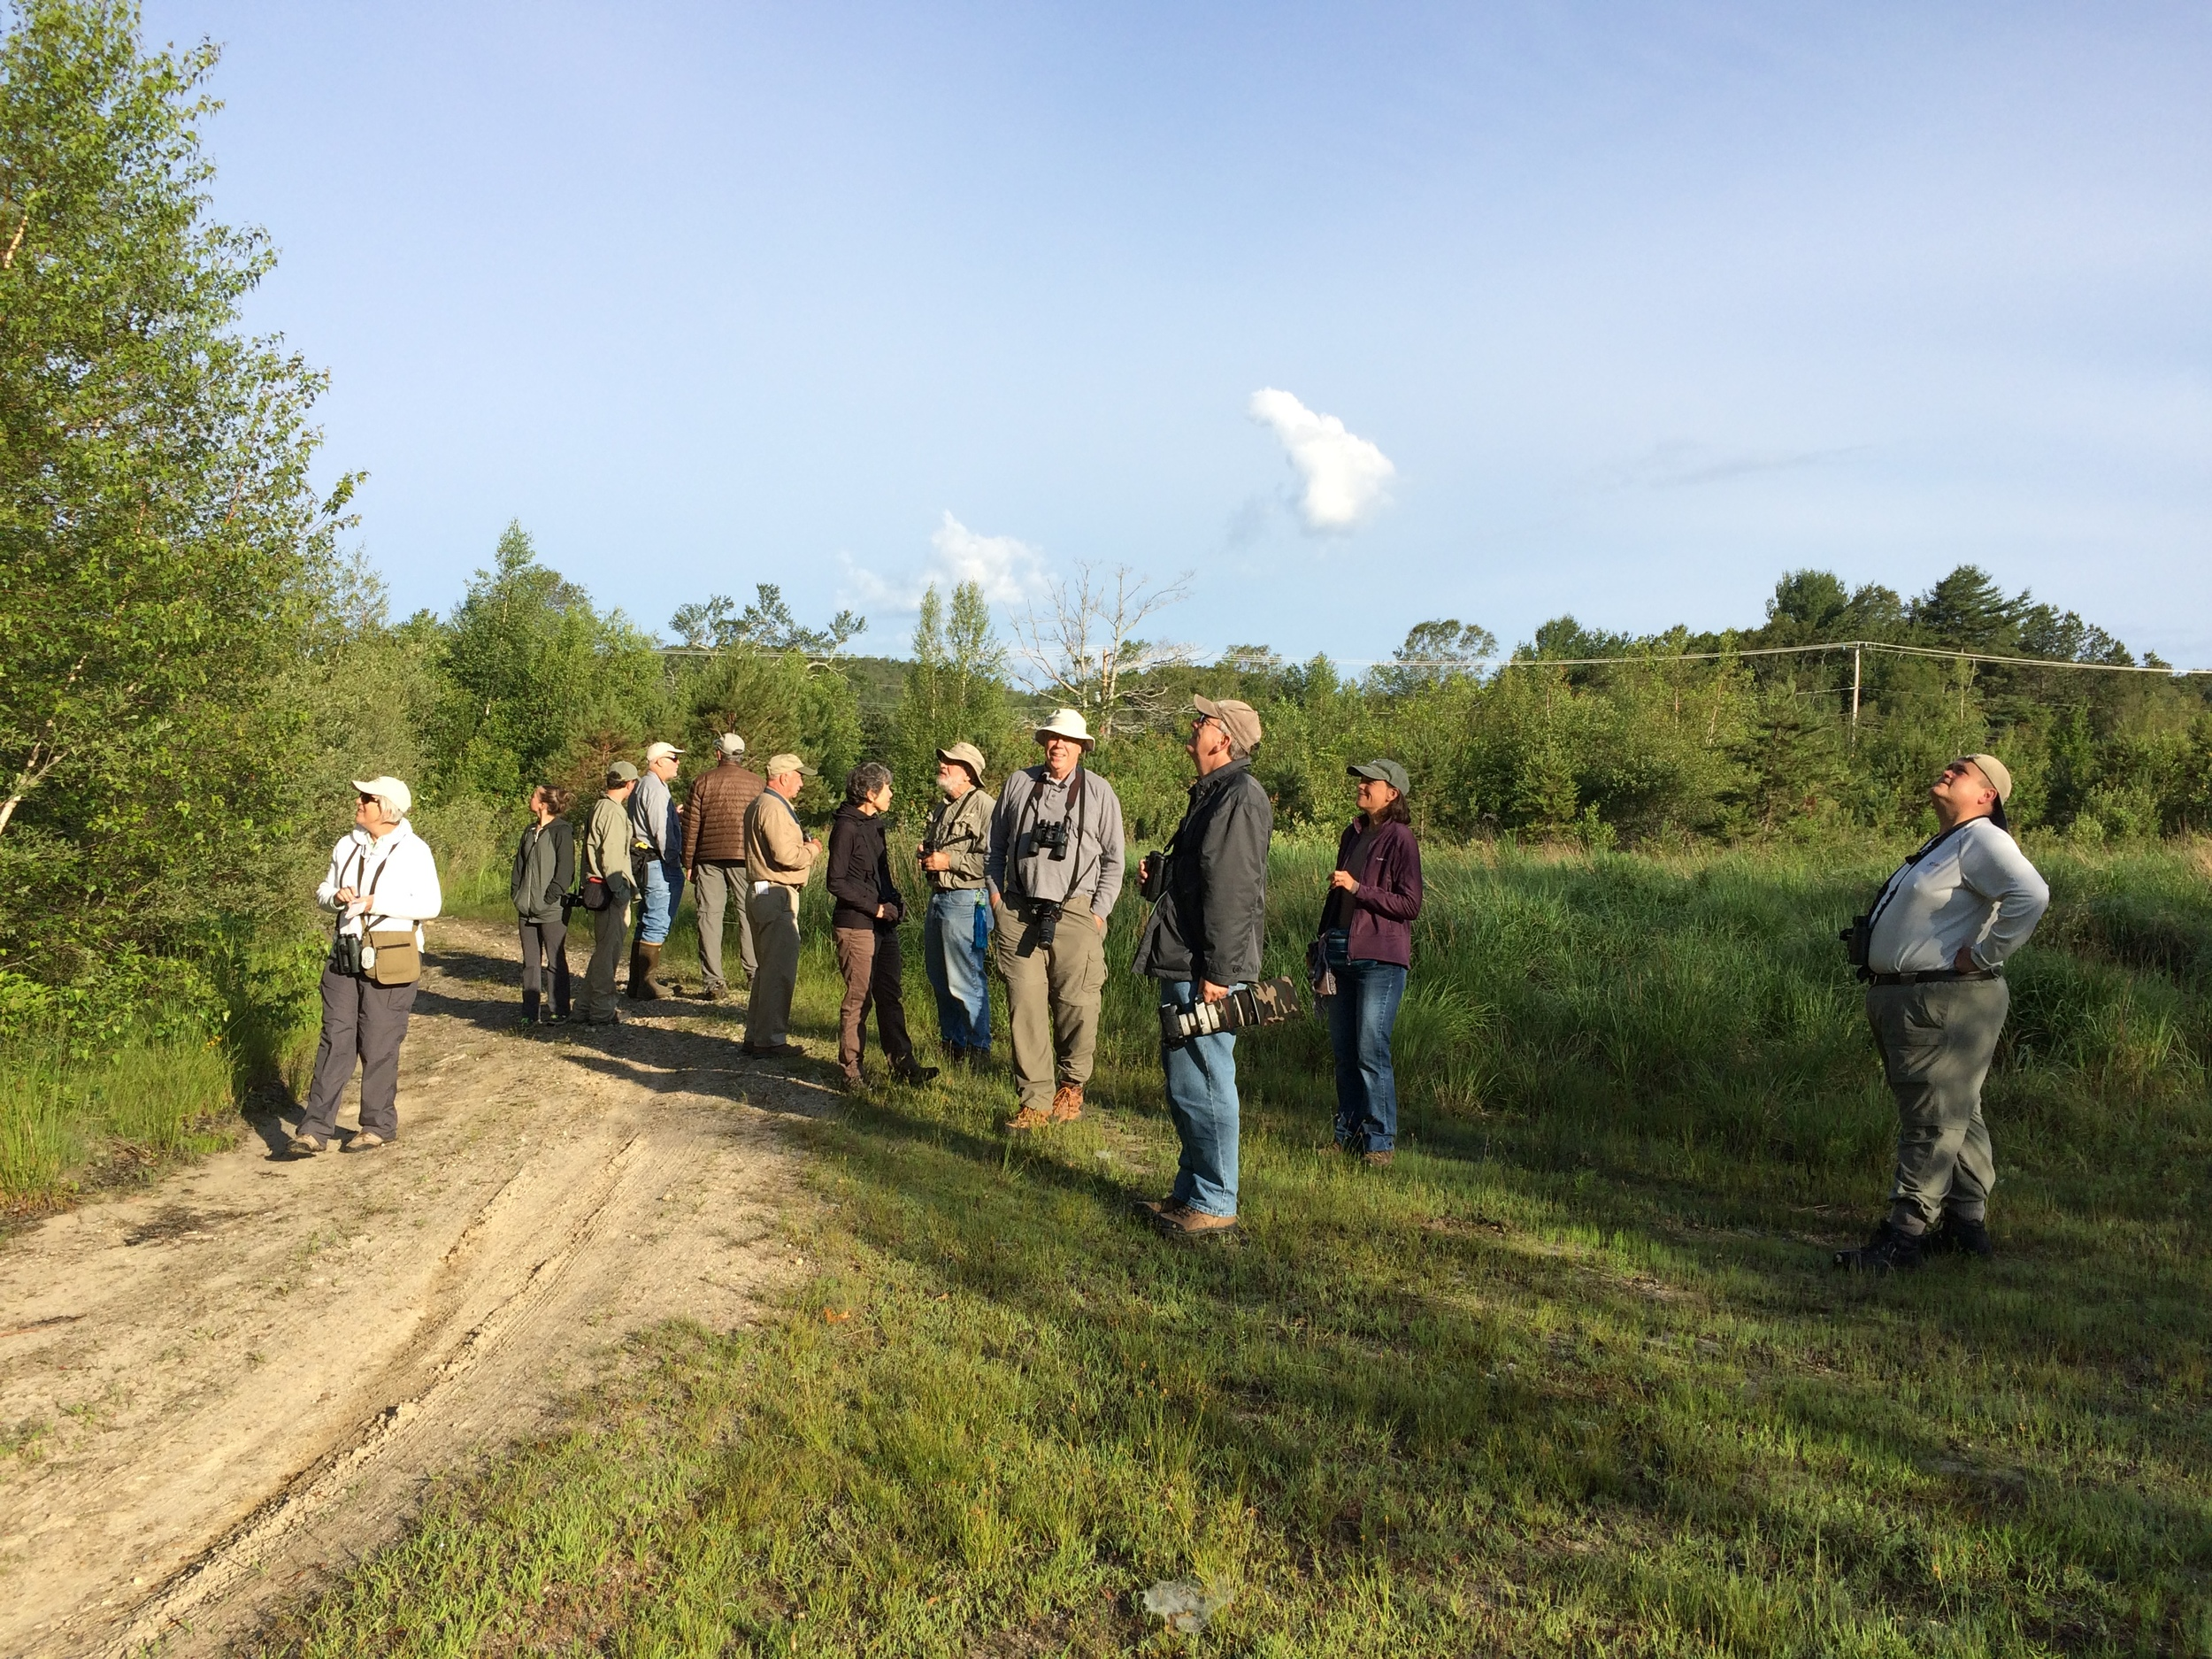 June 27, 2015 | Southeast Ma Bird Club lead by Steven Van der Veen